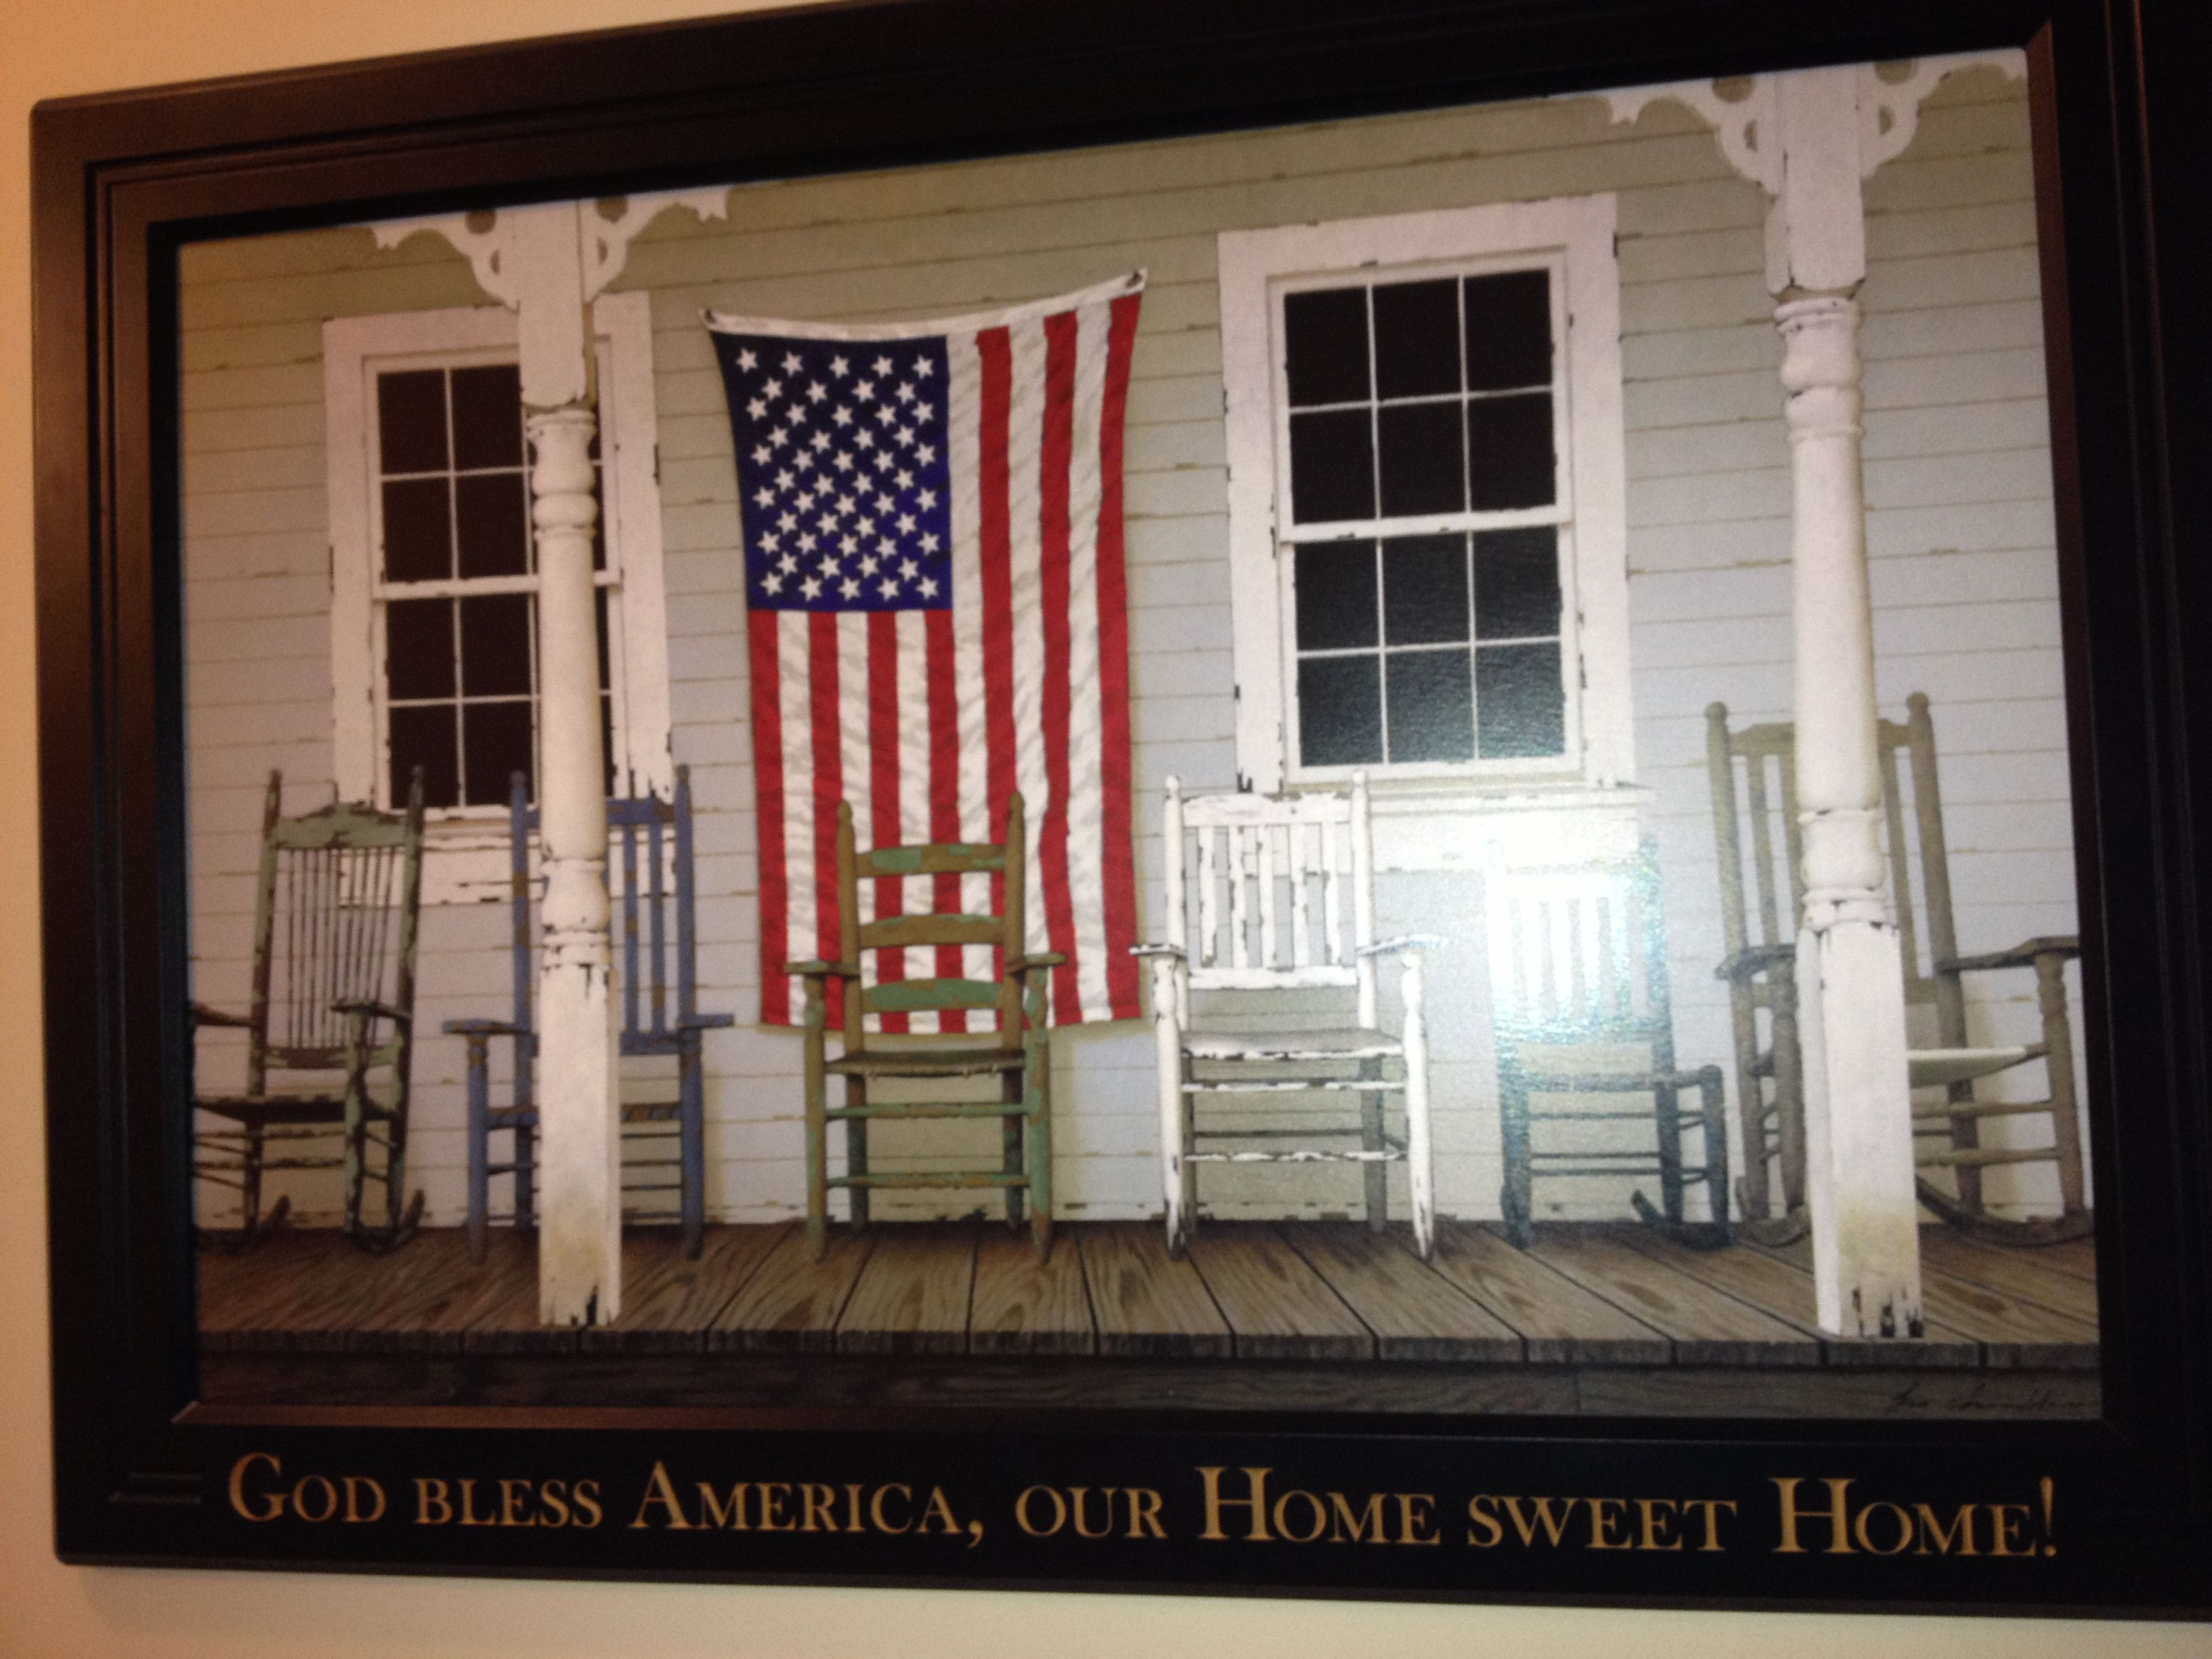 God Bless America Our Home Sweet Home Framed Art Hobby Lobby Recently On Sale 50 Off God Bless America Sweet Home Home